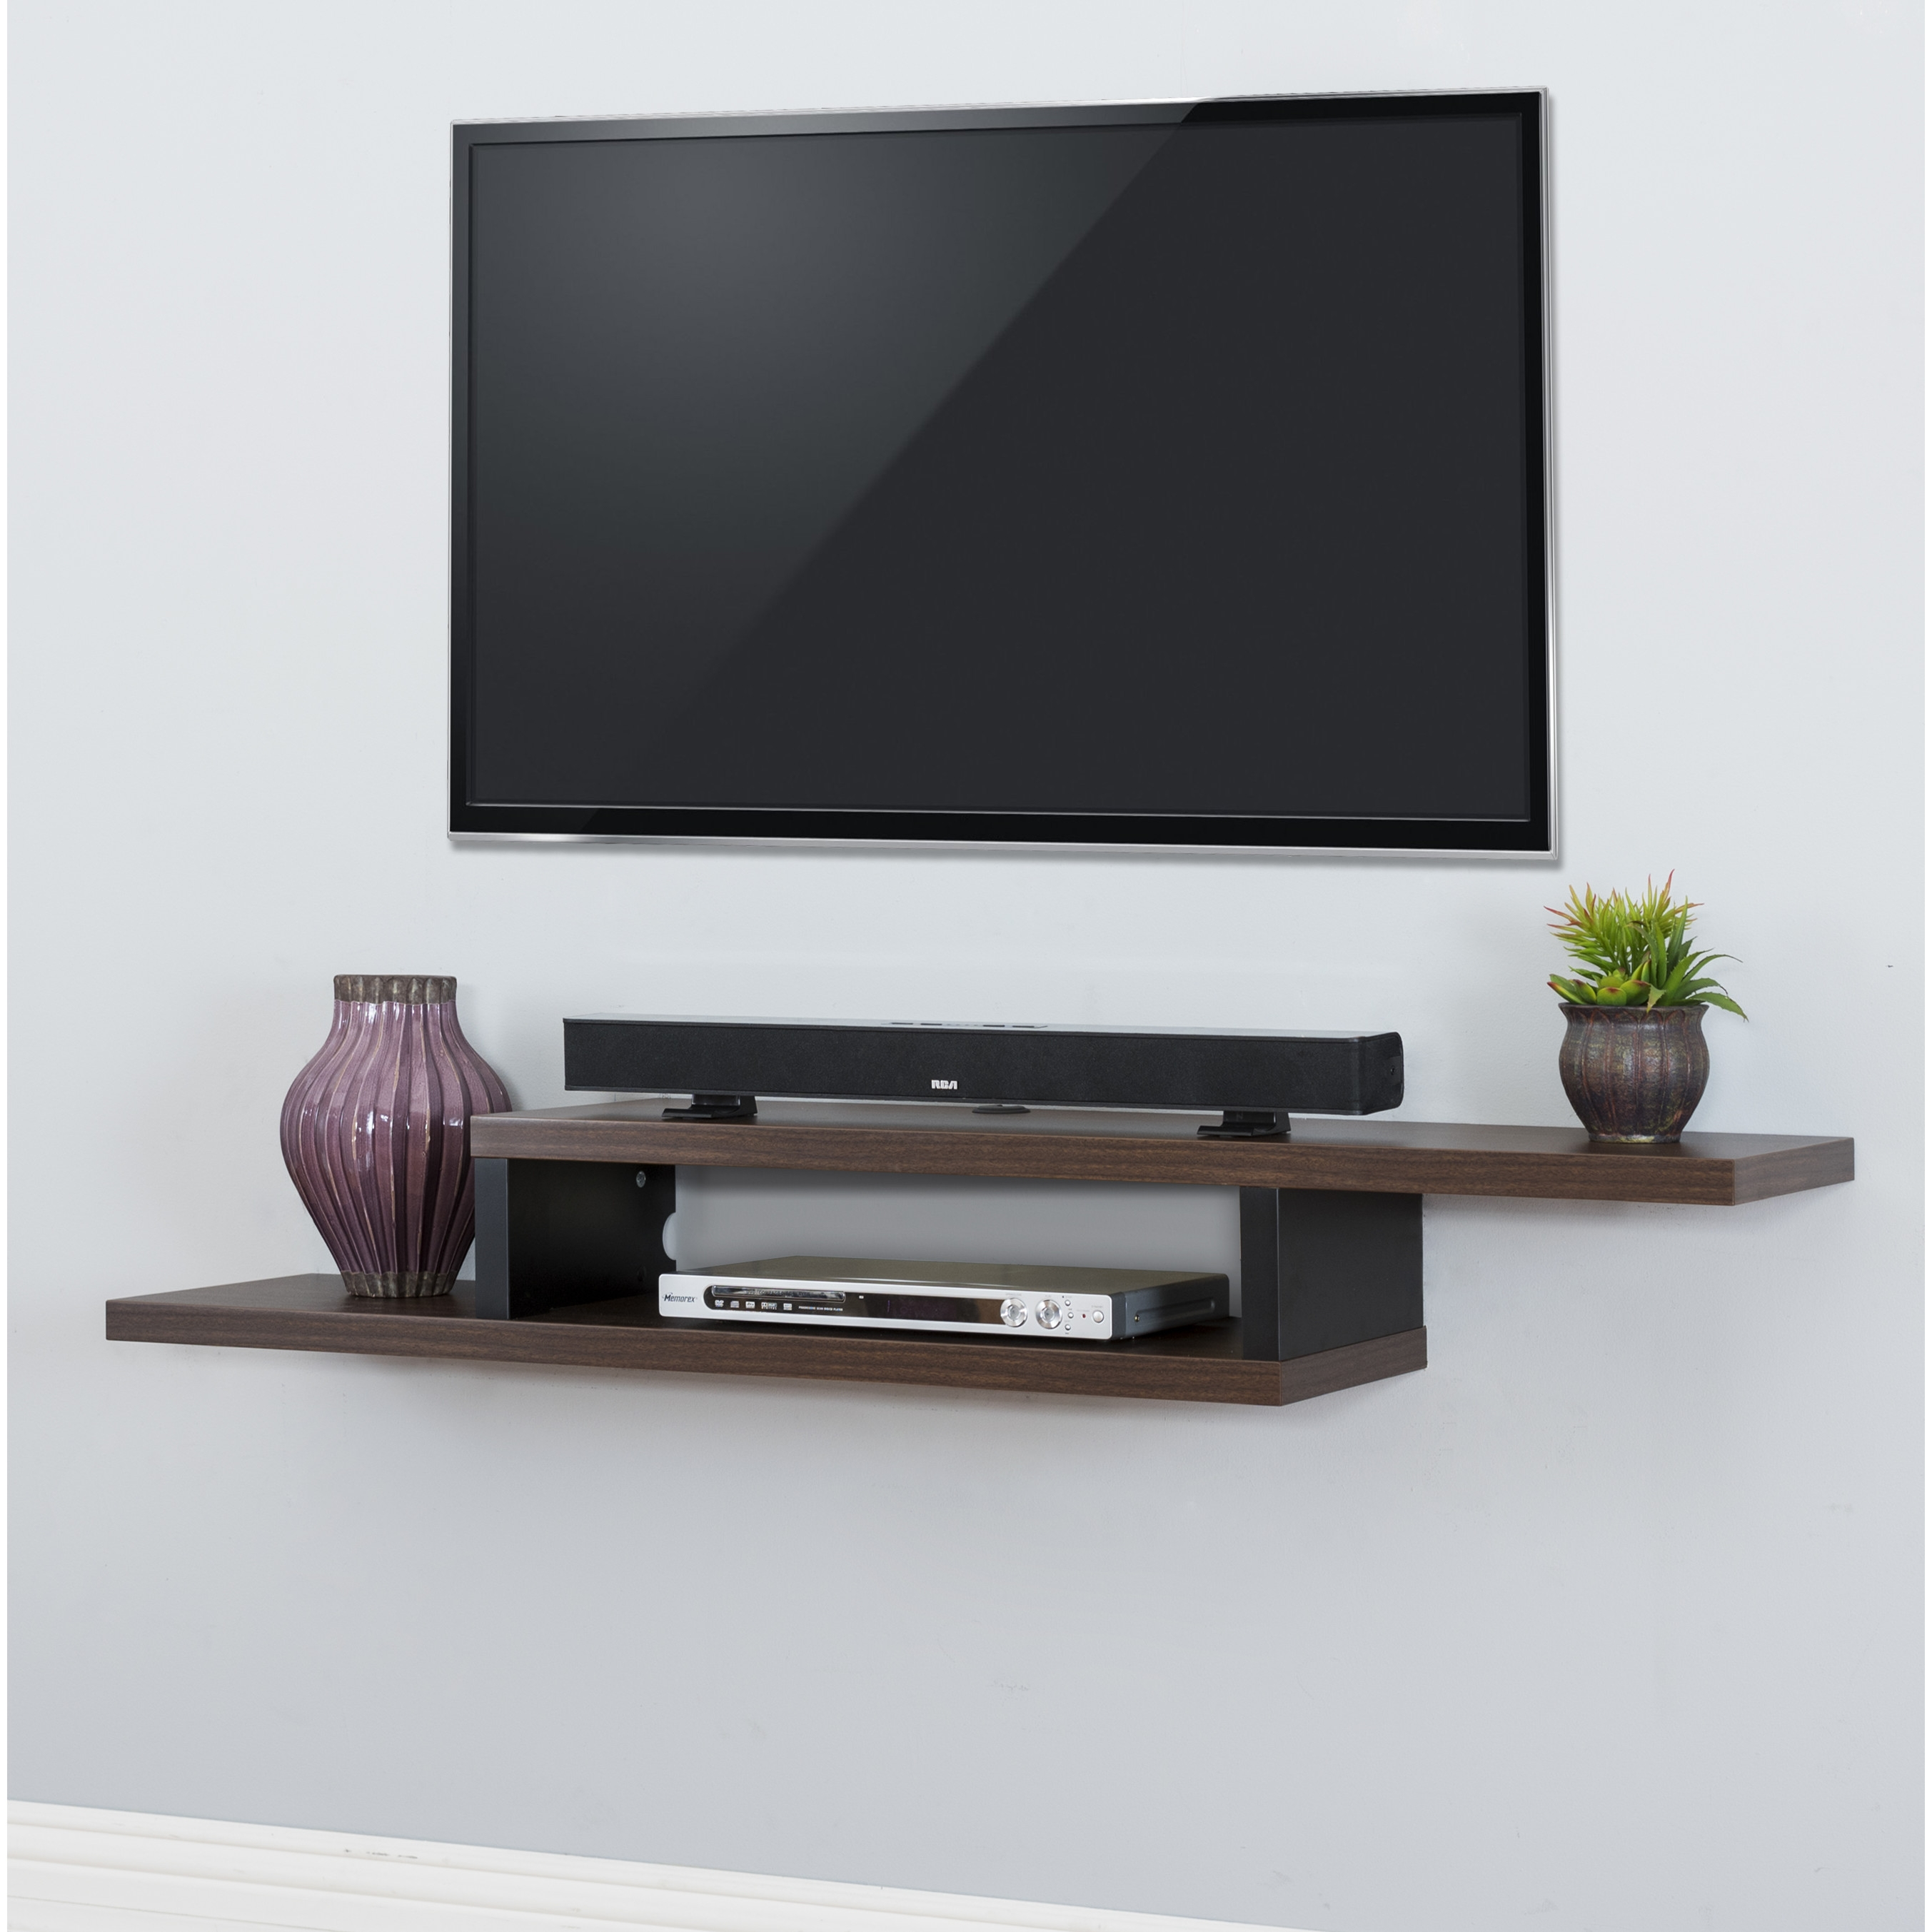 Wall Shelves Design Affordable Wall Mounted Shelves For Tv Wall For Flat Screen Shelving (#12 of 15)